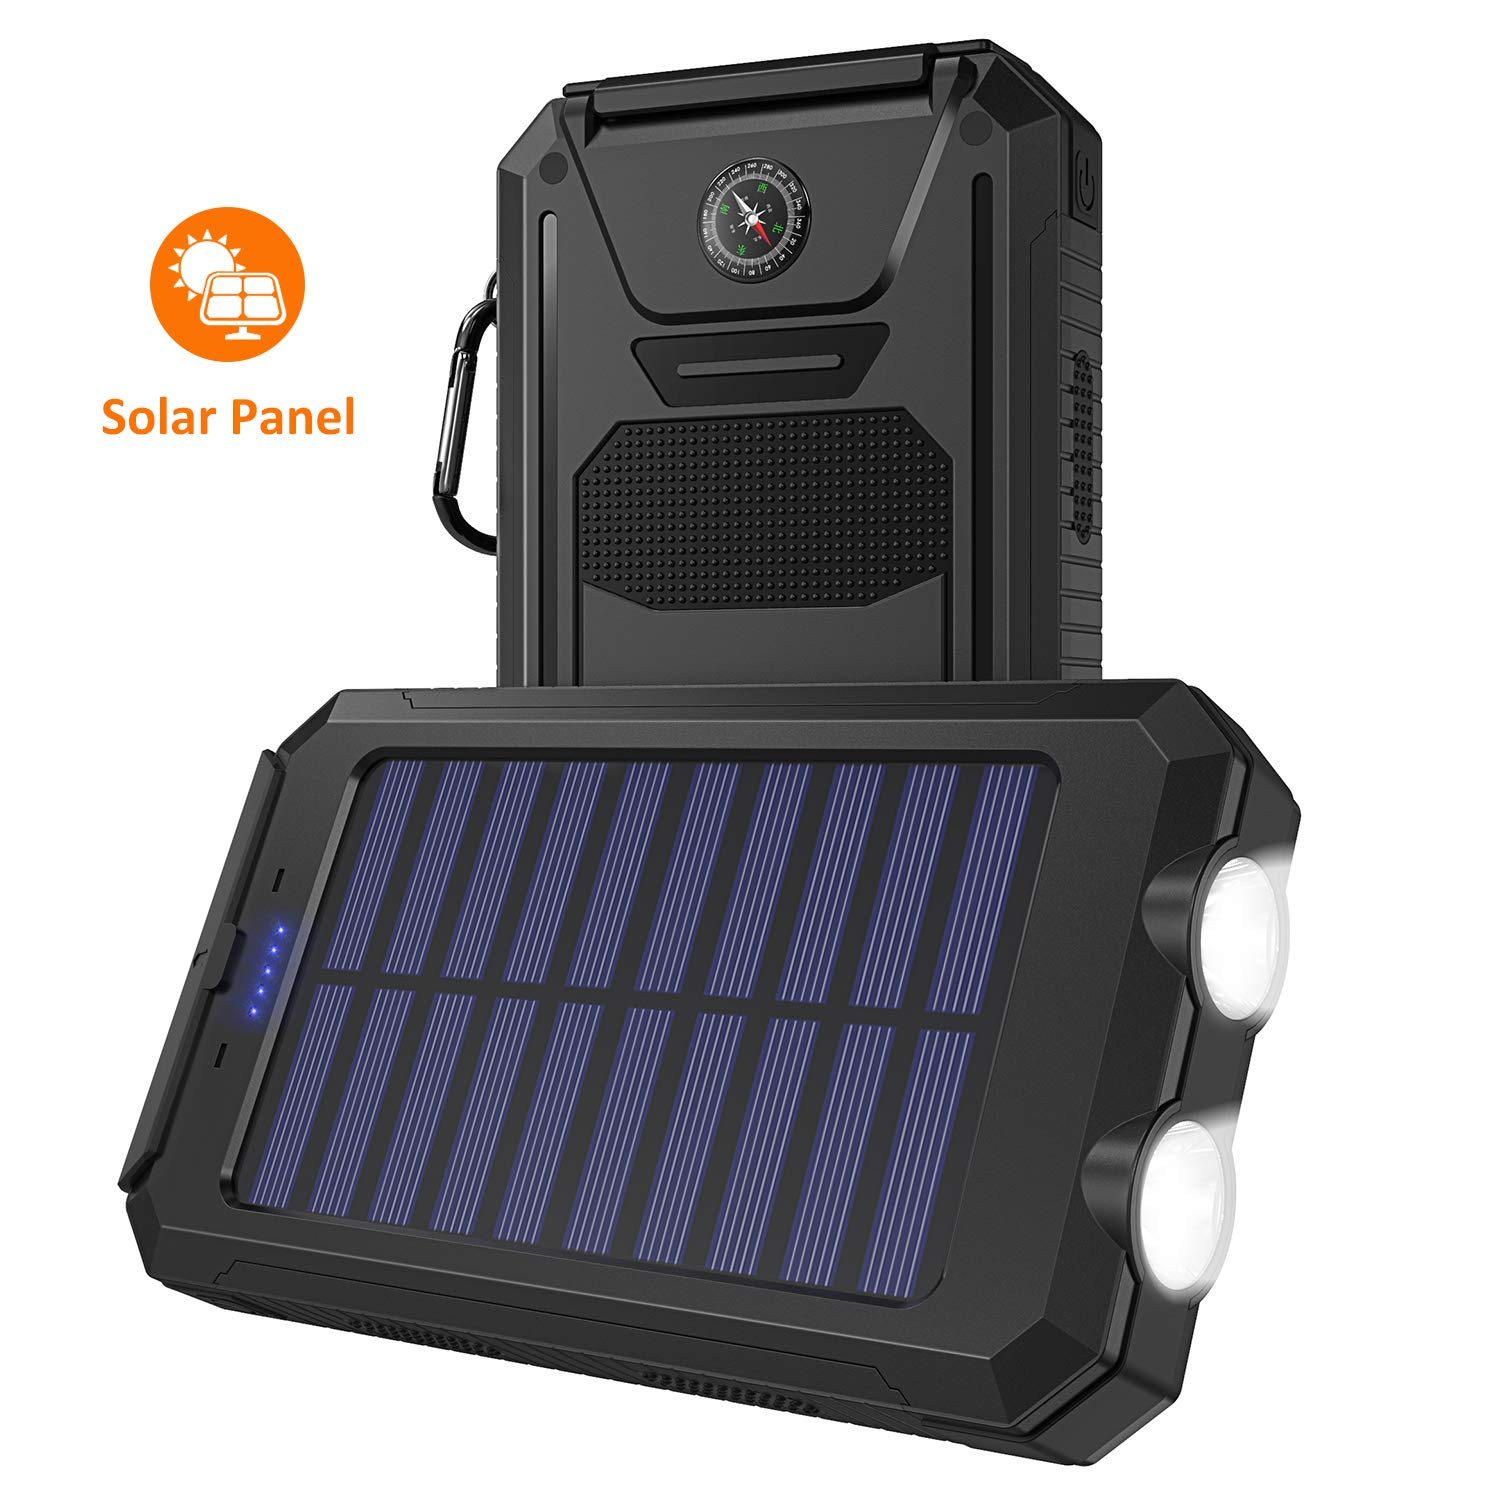 Solar Charger, STOON 10000mAh Portable Solar Power Bank Phone Charger with Flashlight & Compass for Outdoor Camping Travelling, External Battery Pack with Dual USB Ports for iPhone, iPad and More by STOON